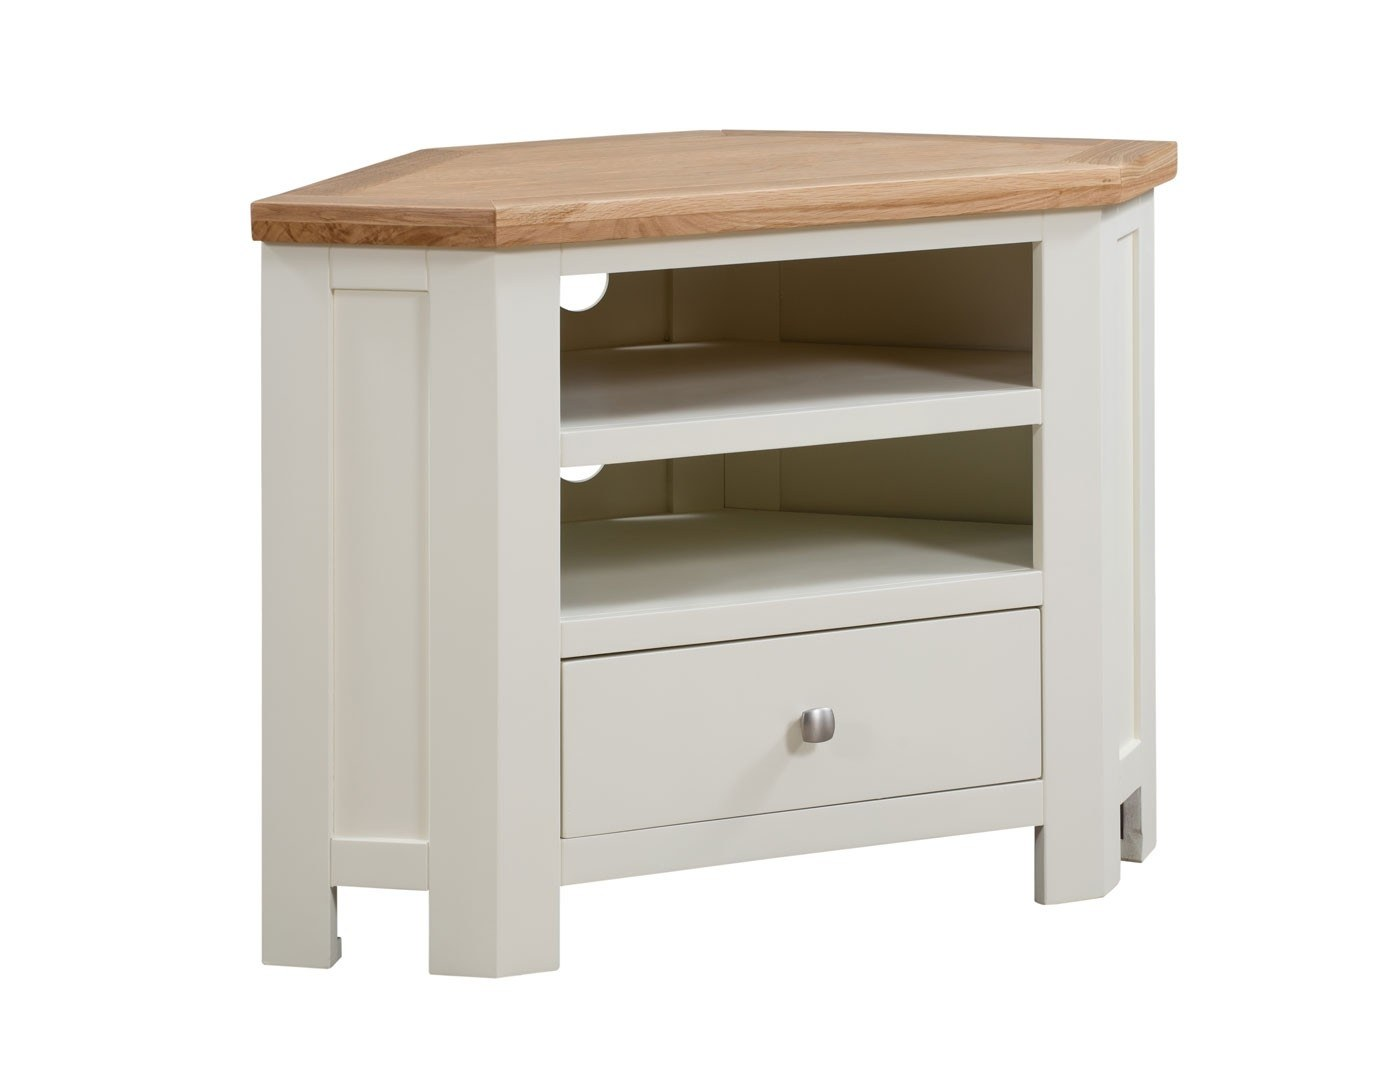 Dorset Painted Corner Tv Unit Oak Furniture House - Garden Furniture Clearance Company Dorset